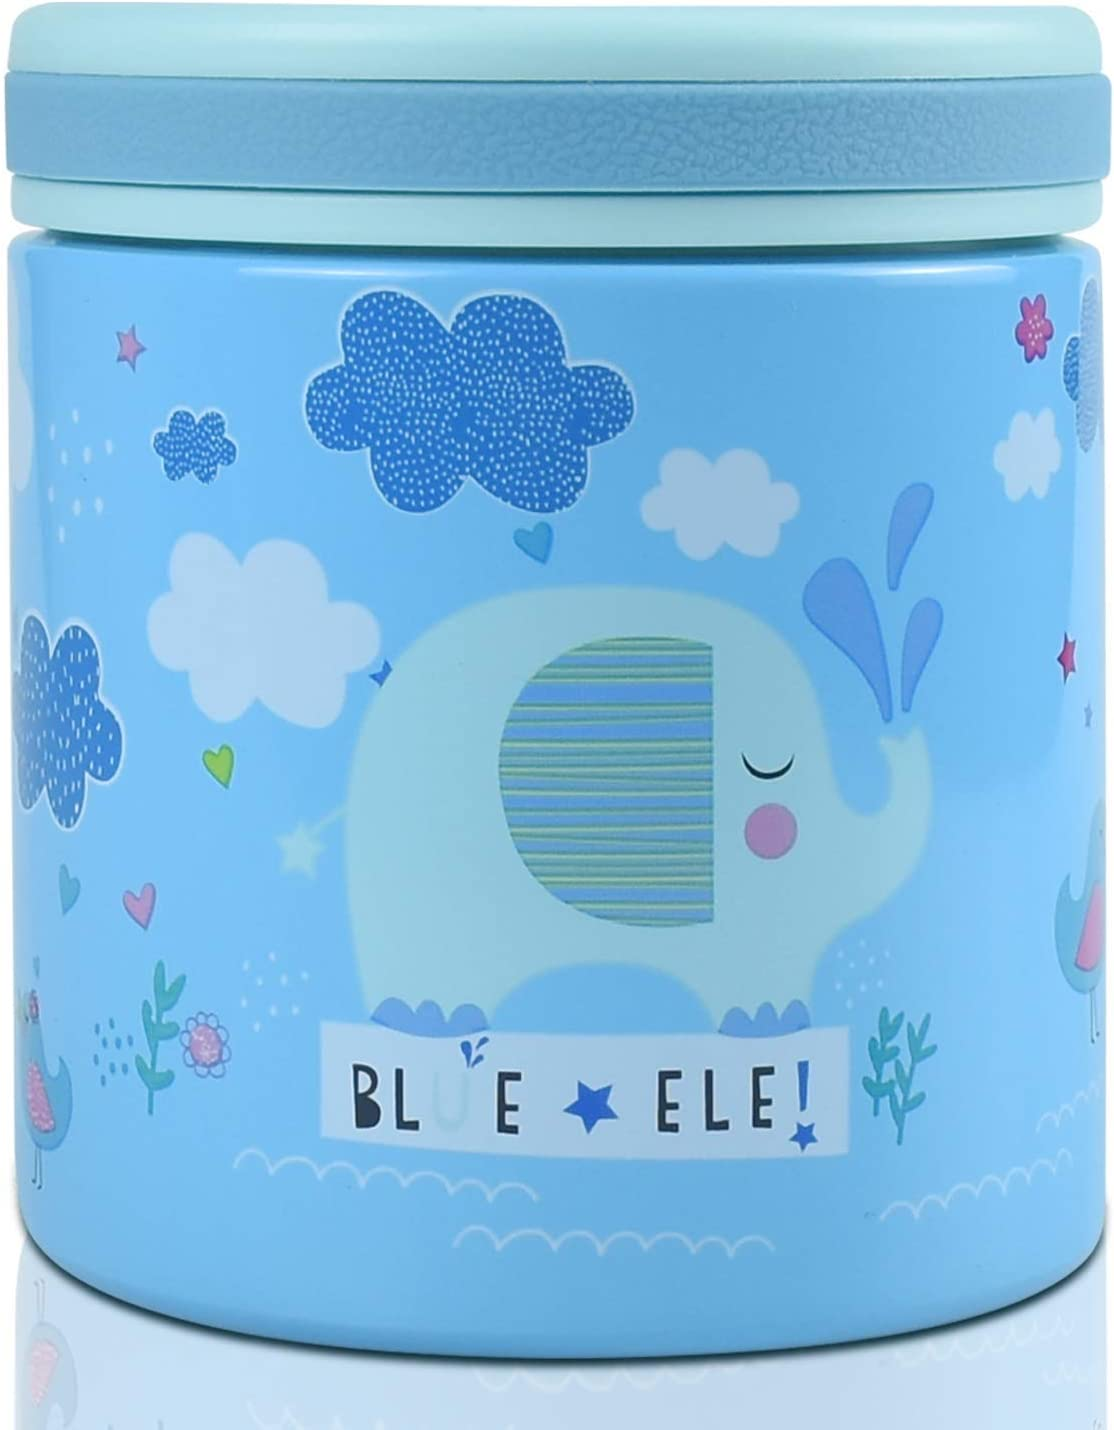 Blue Ele 14oz Thermos Vacuum Insulated Stainless Steel Lunch Box for Kids and Adults with 304 Stainless Steel, Insulated Lid